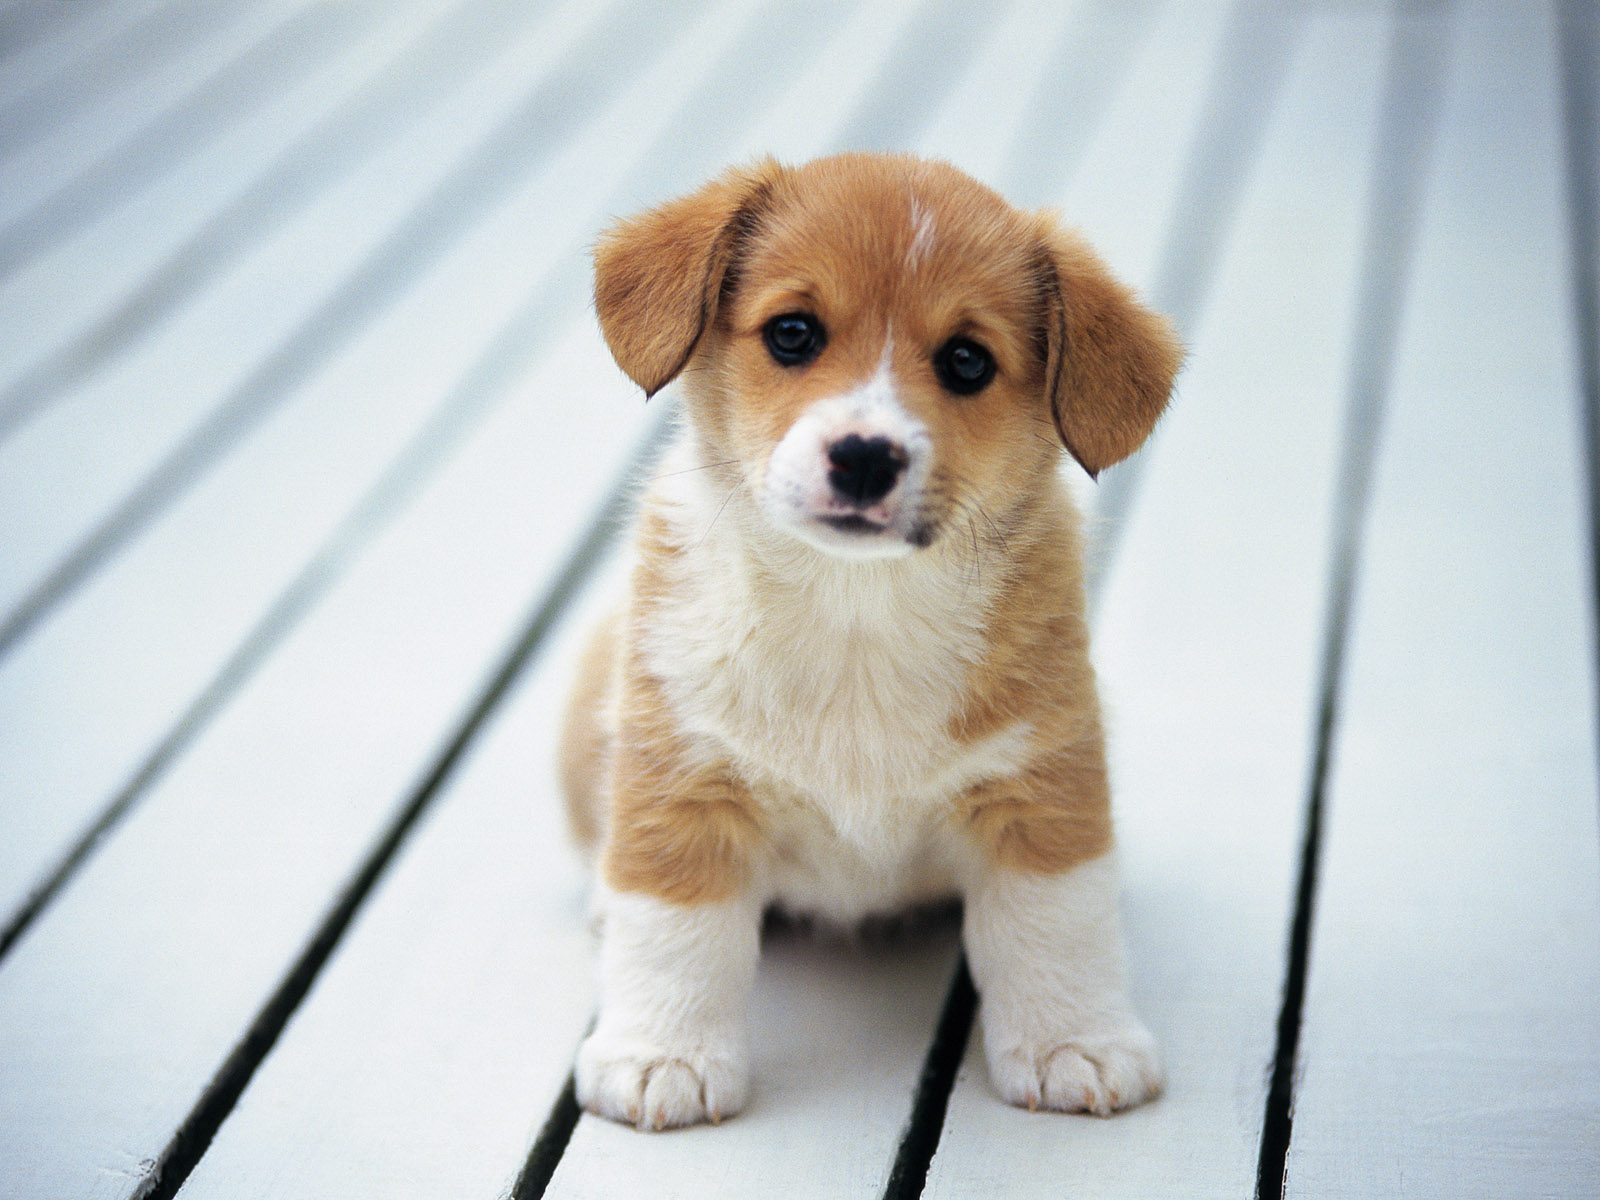 Widescreen Sweet Puppy Dogs hd wallpapers Background HD Wallpaper 1600x1200